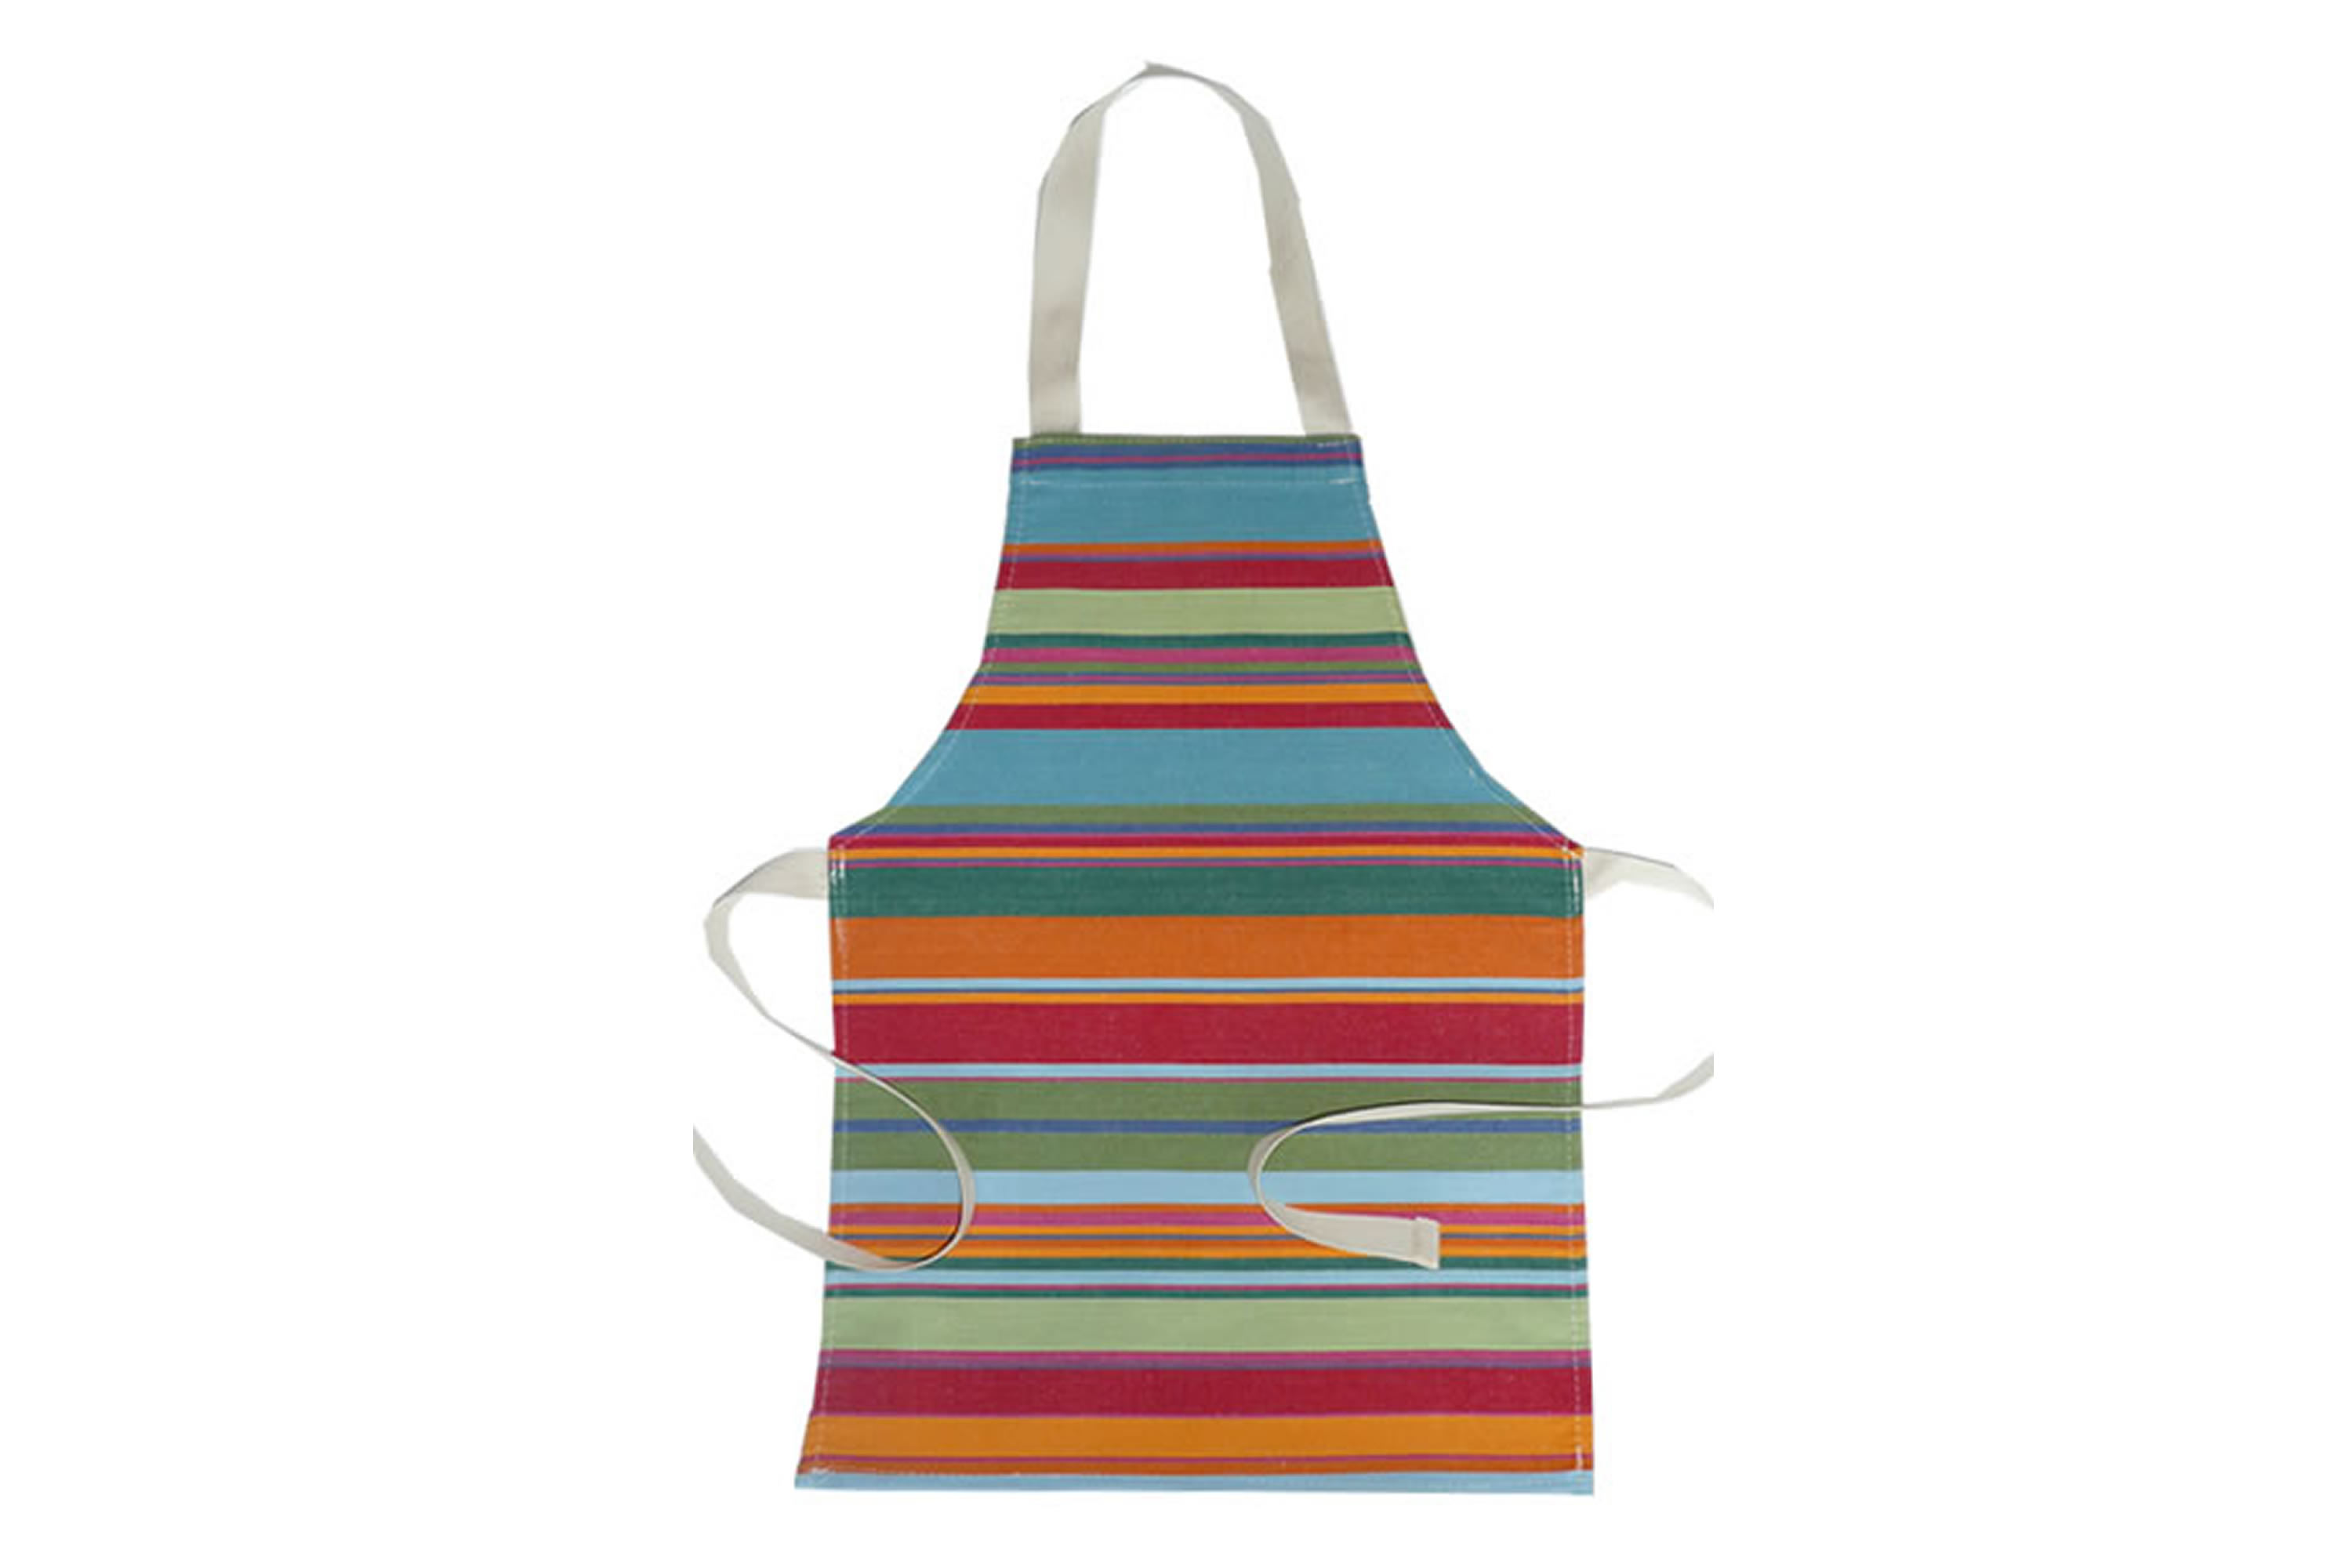 Blue Toddlers Aprons - Striped Aprons For Small Children Blue  Green  Yellow  Stripes